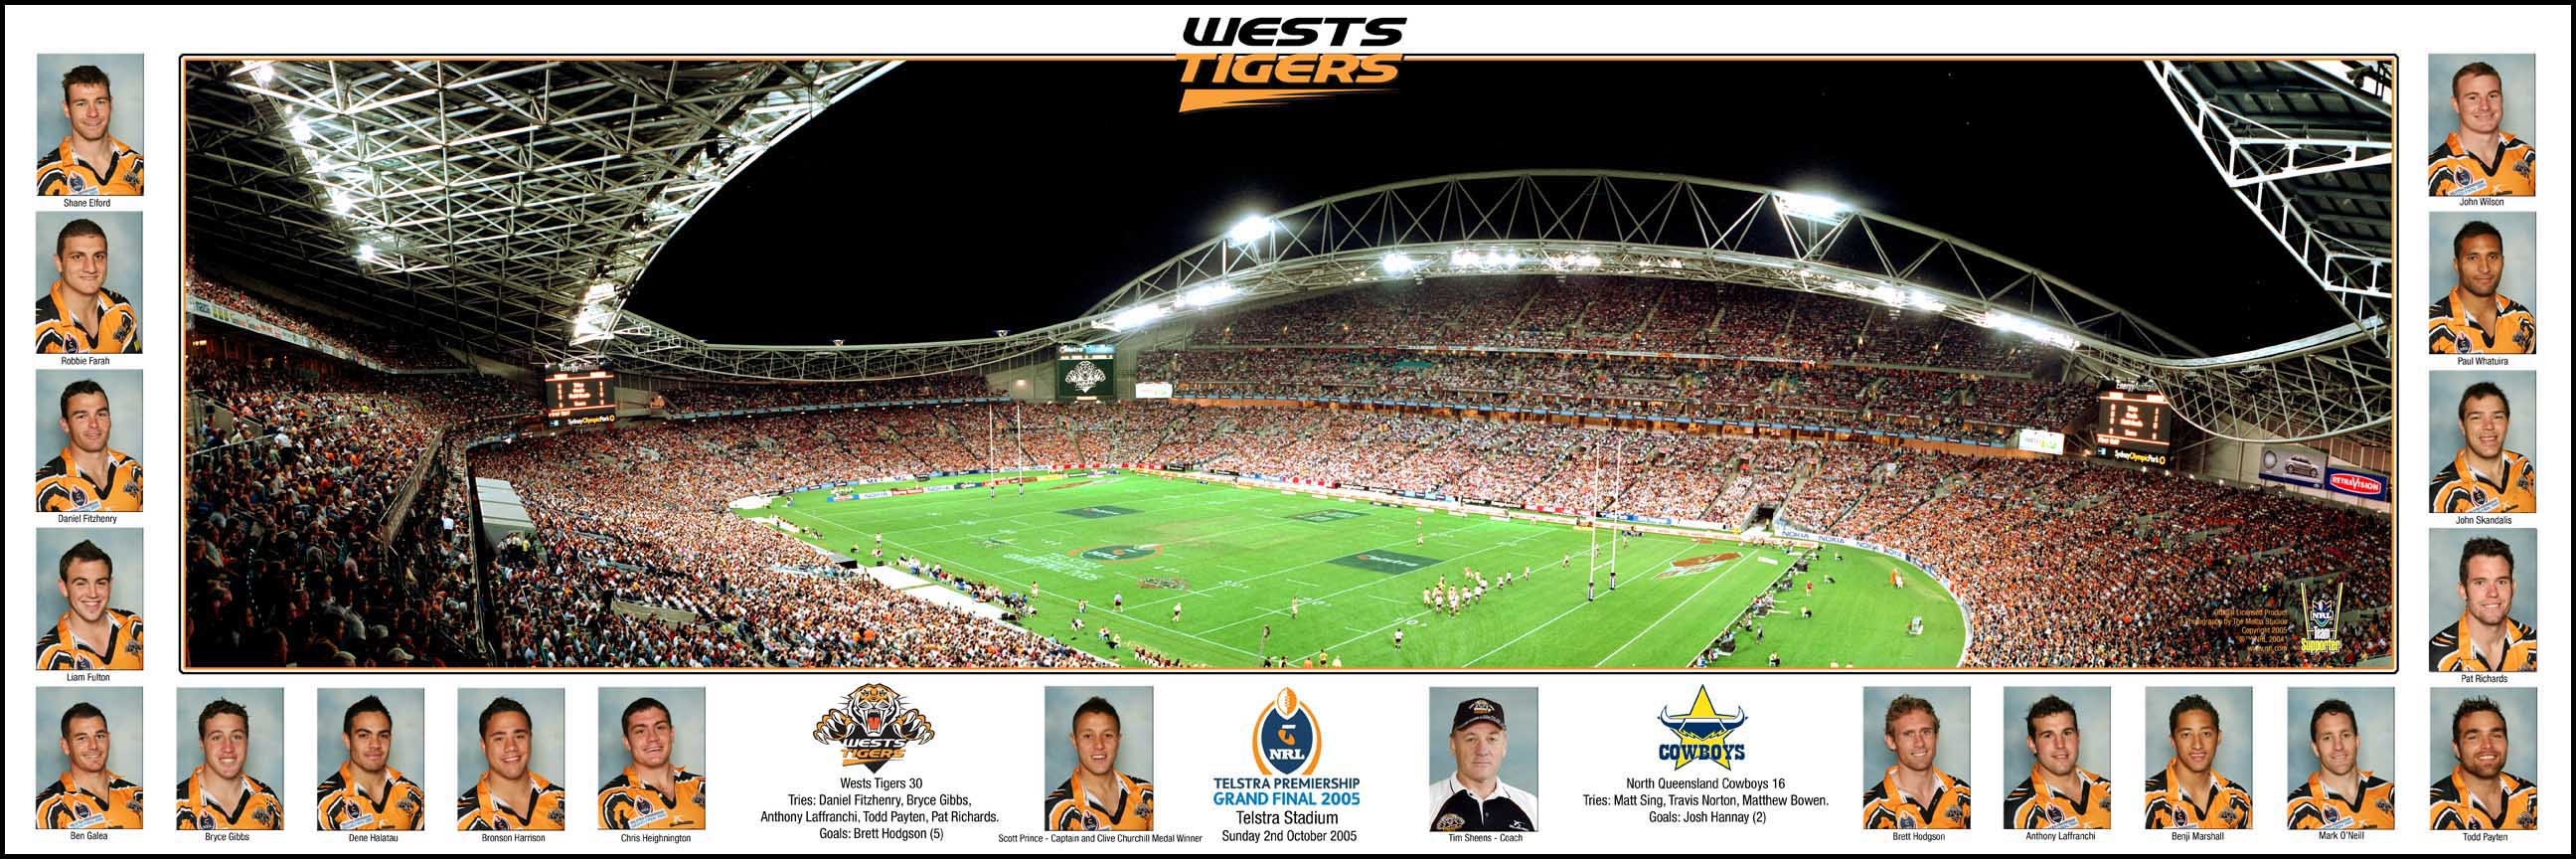 Wests Tigers 2005 Grand Final Ground Panoramic